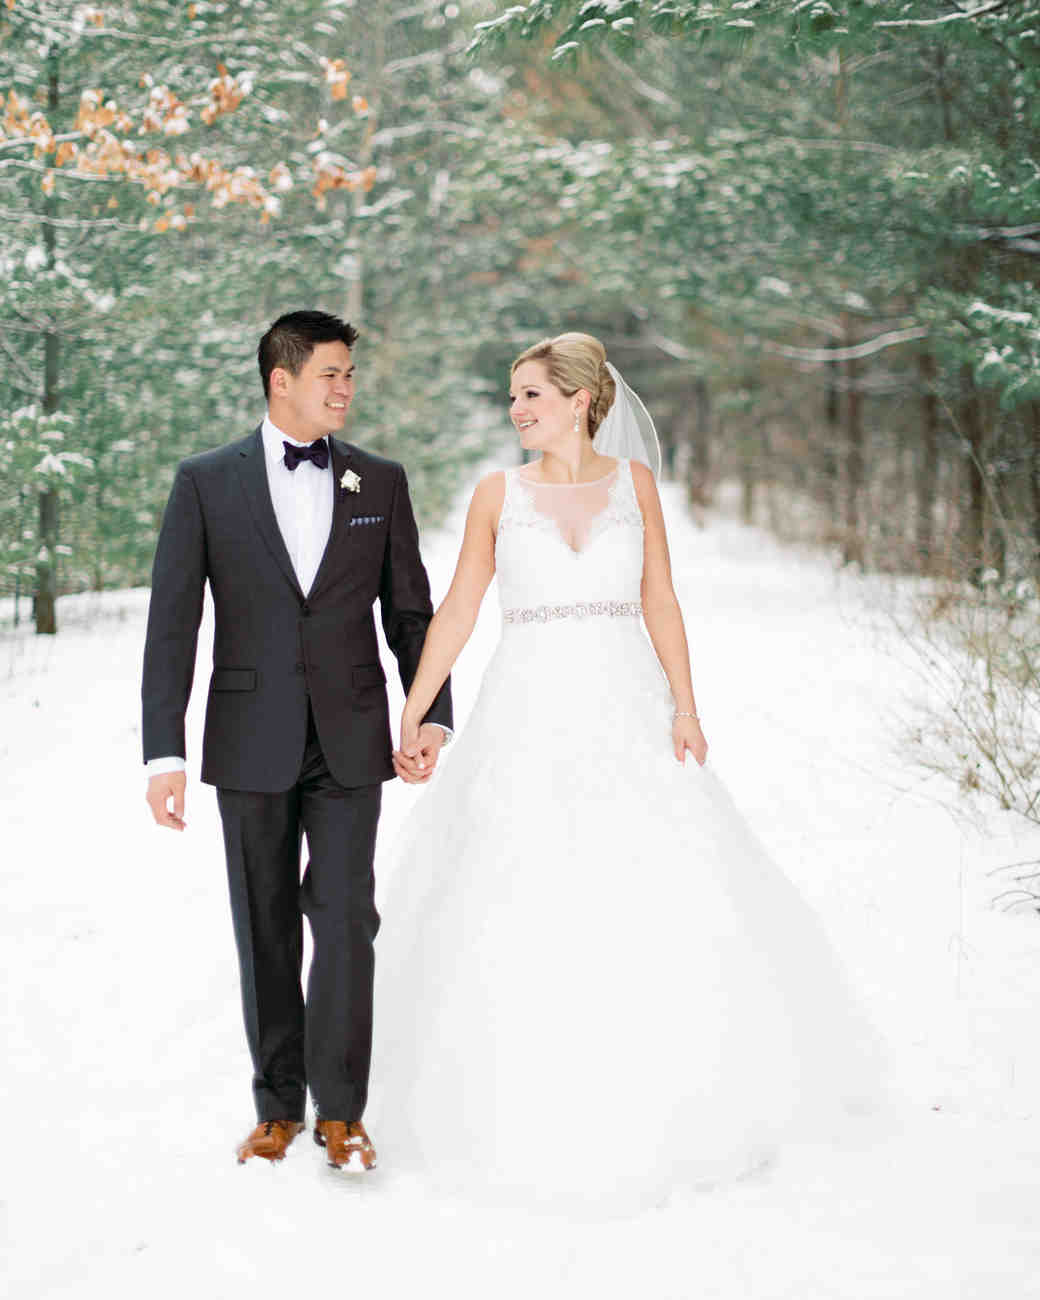 Bride and Groom Walk in Snow